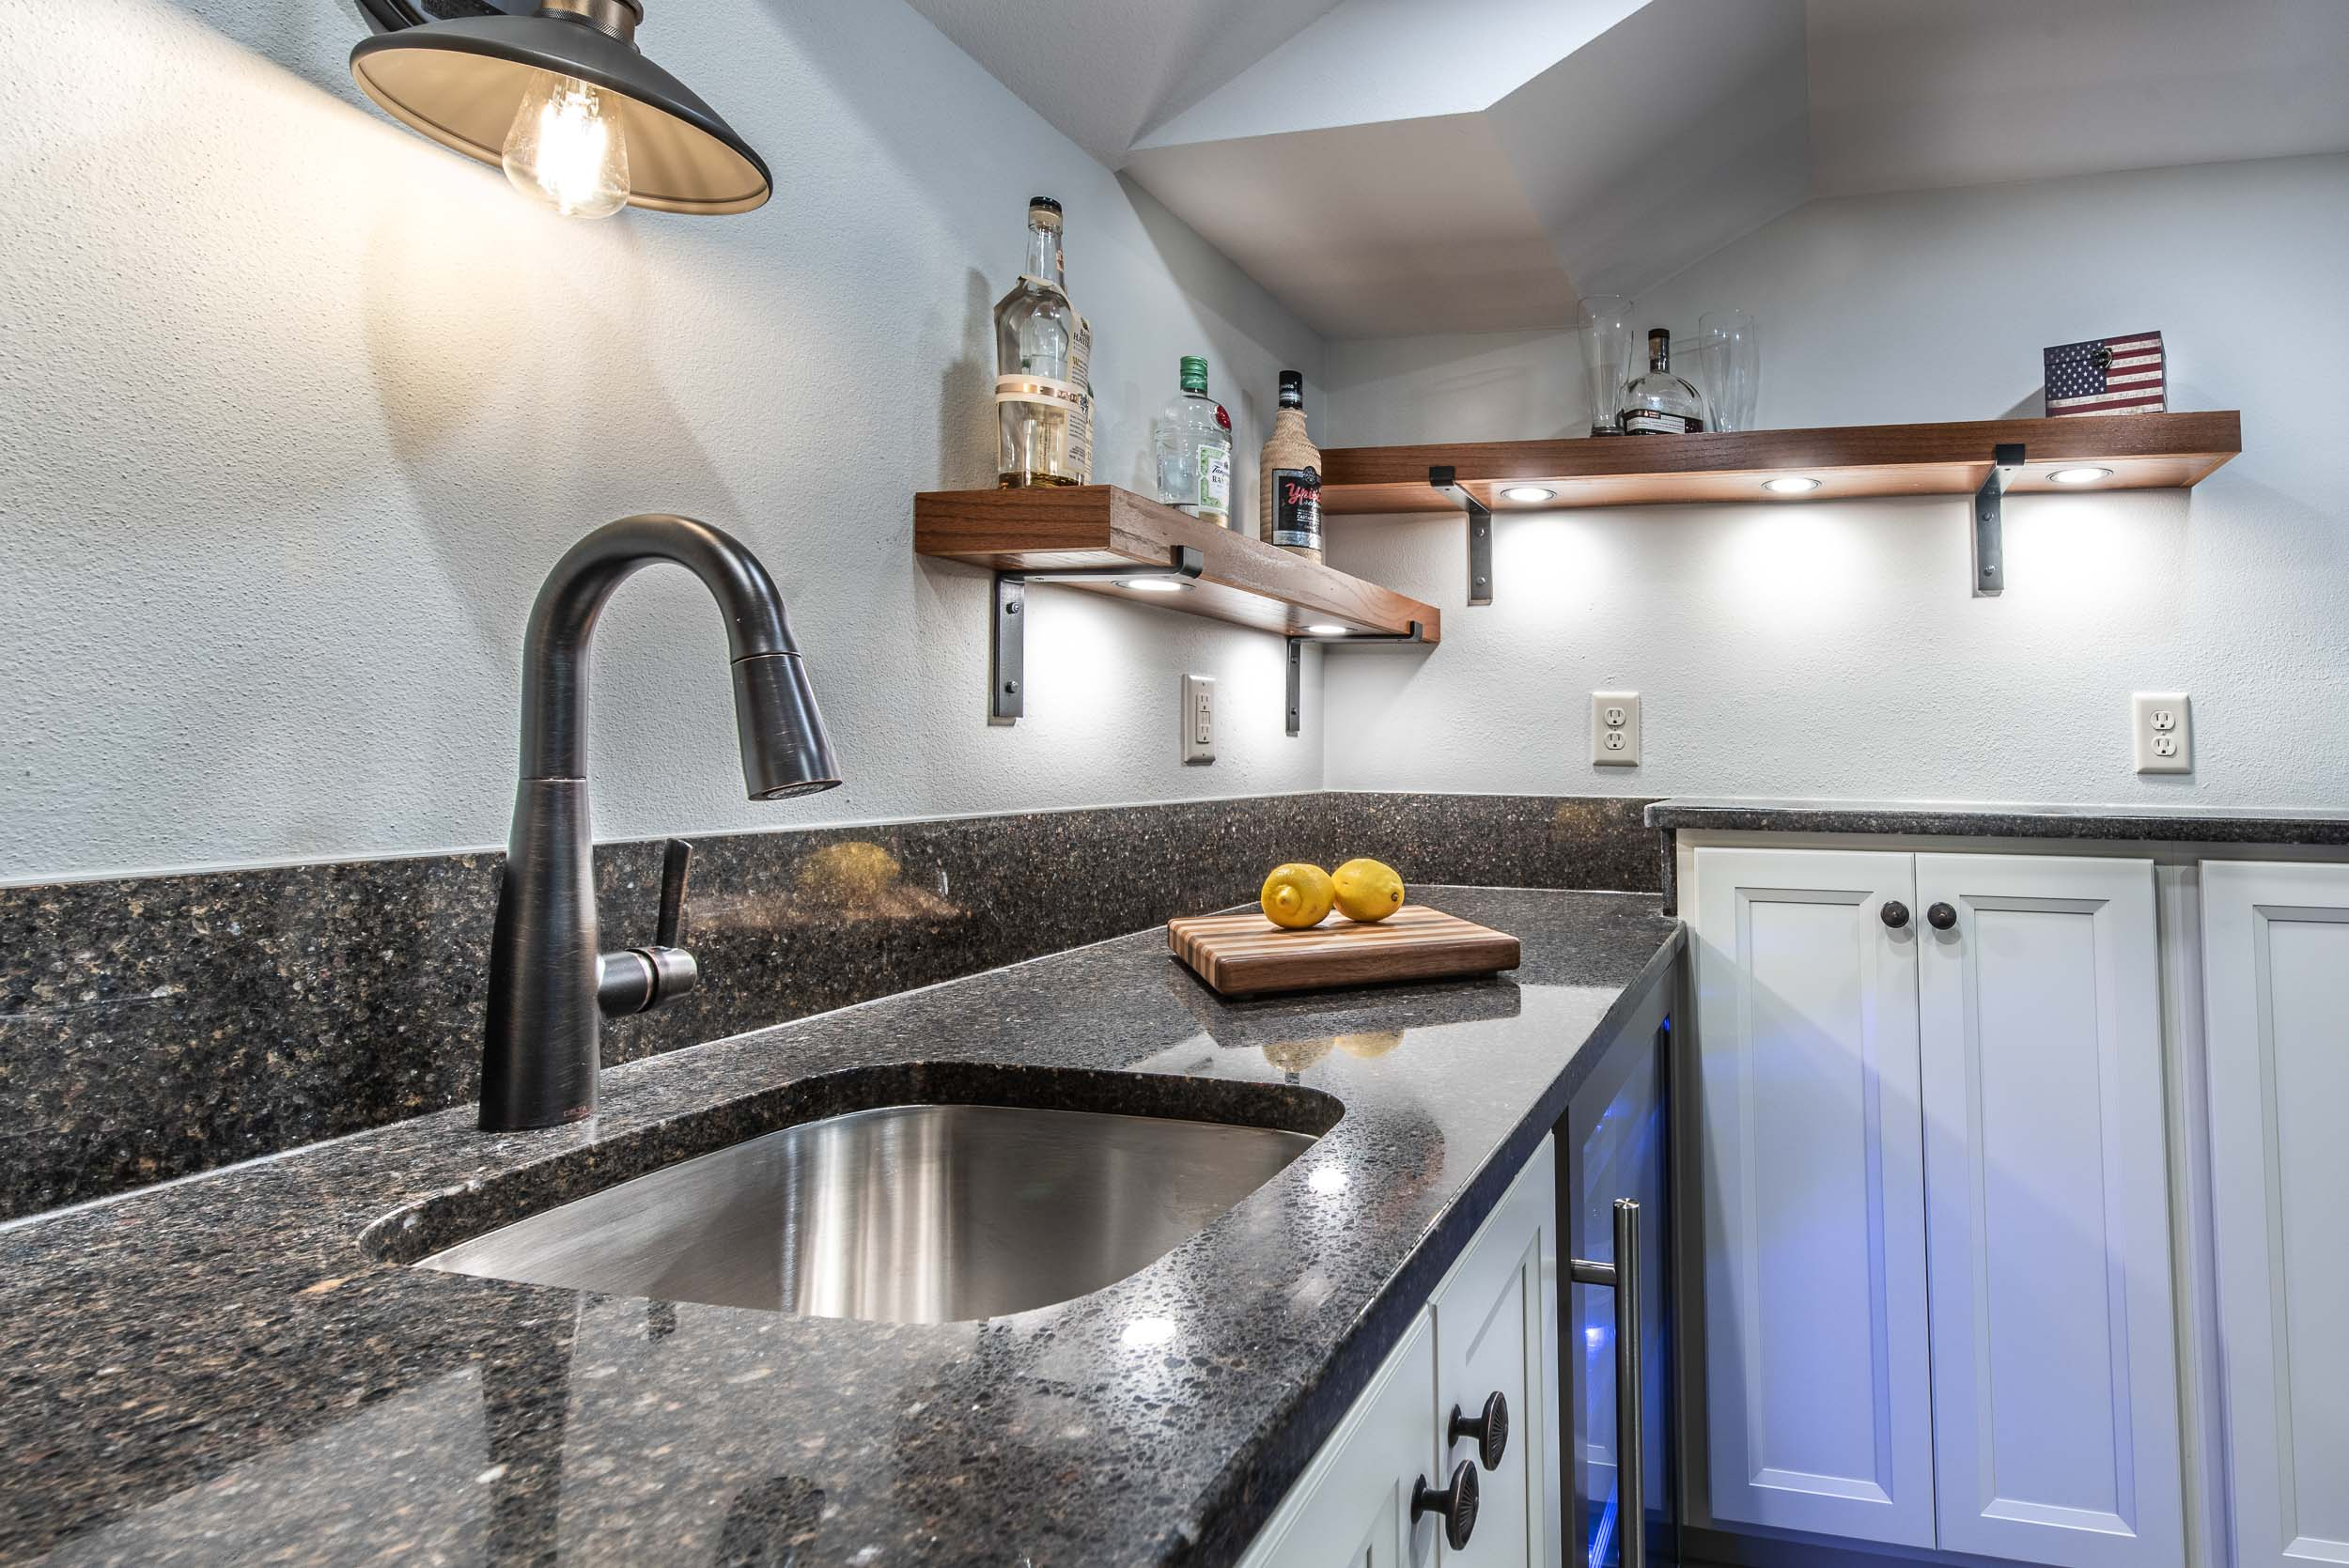 The Countertop is HanStone Quartz In The Color and Pattern Meteorite